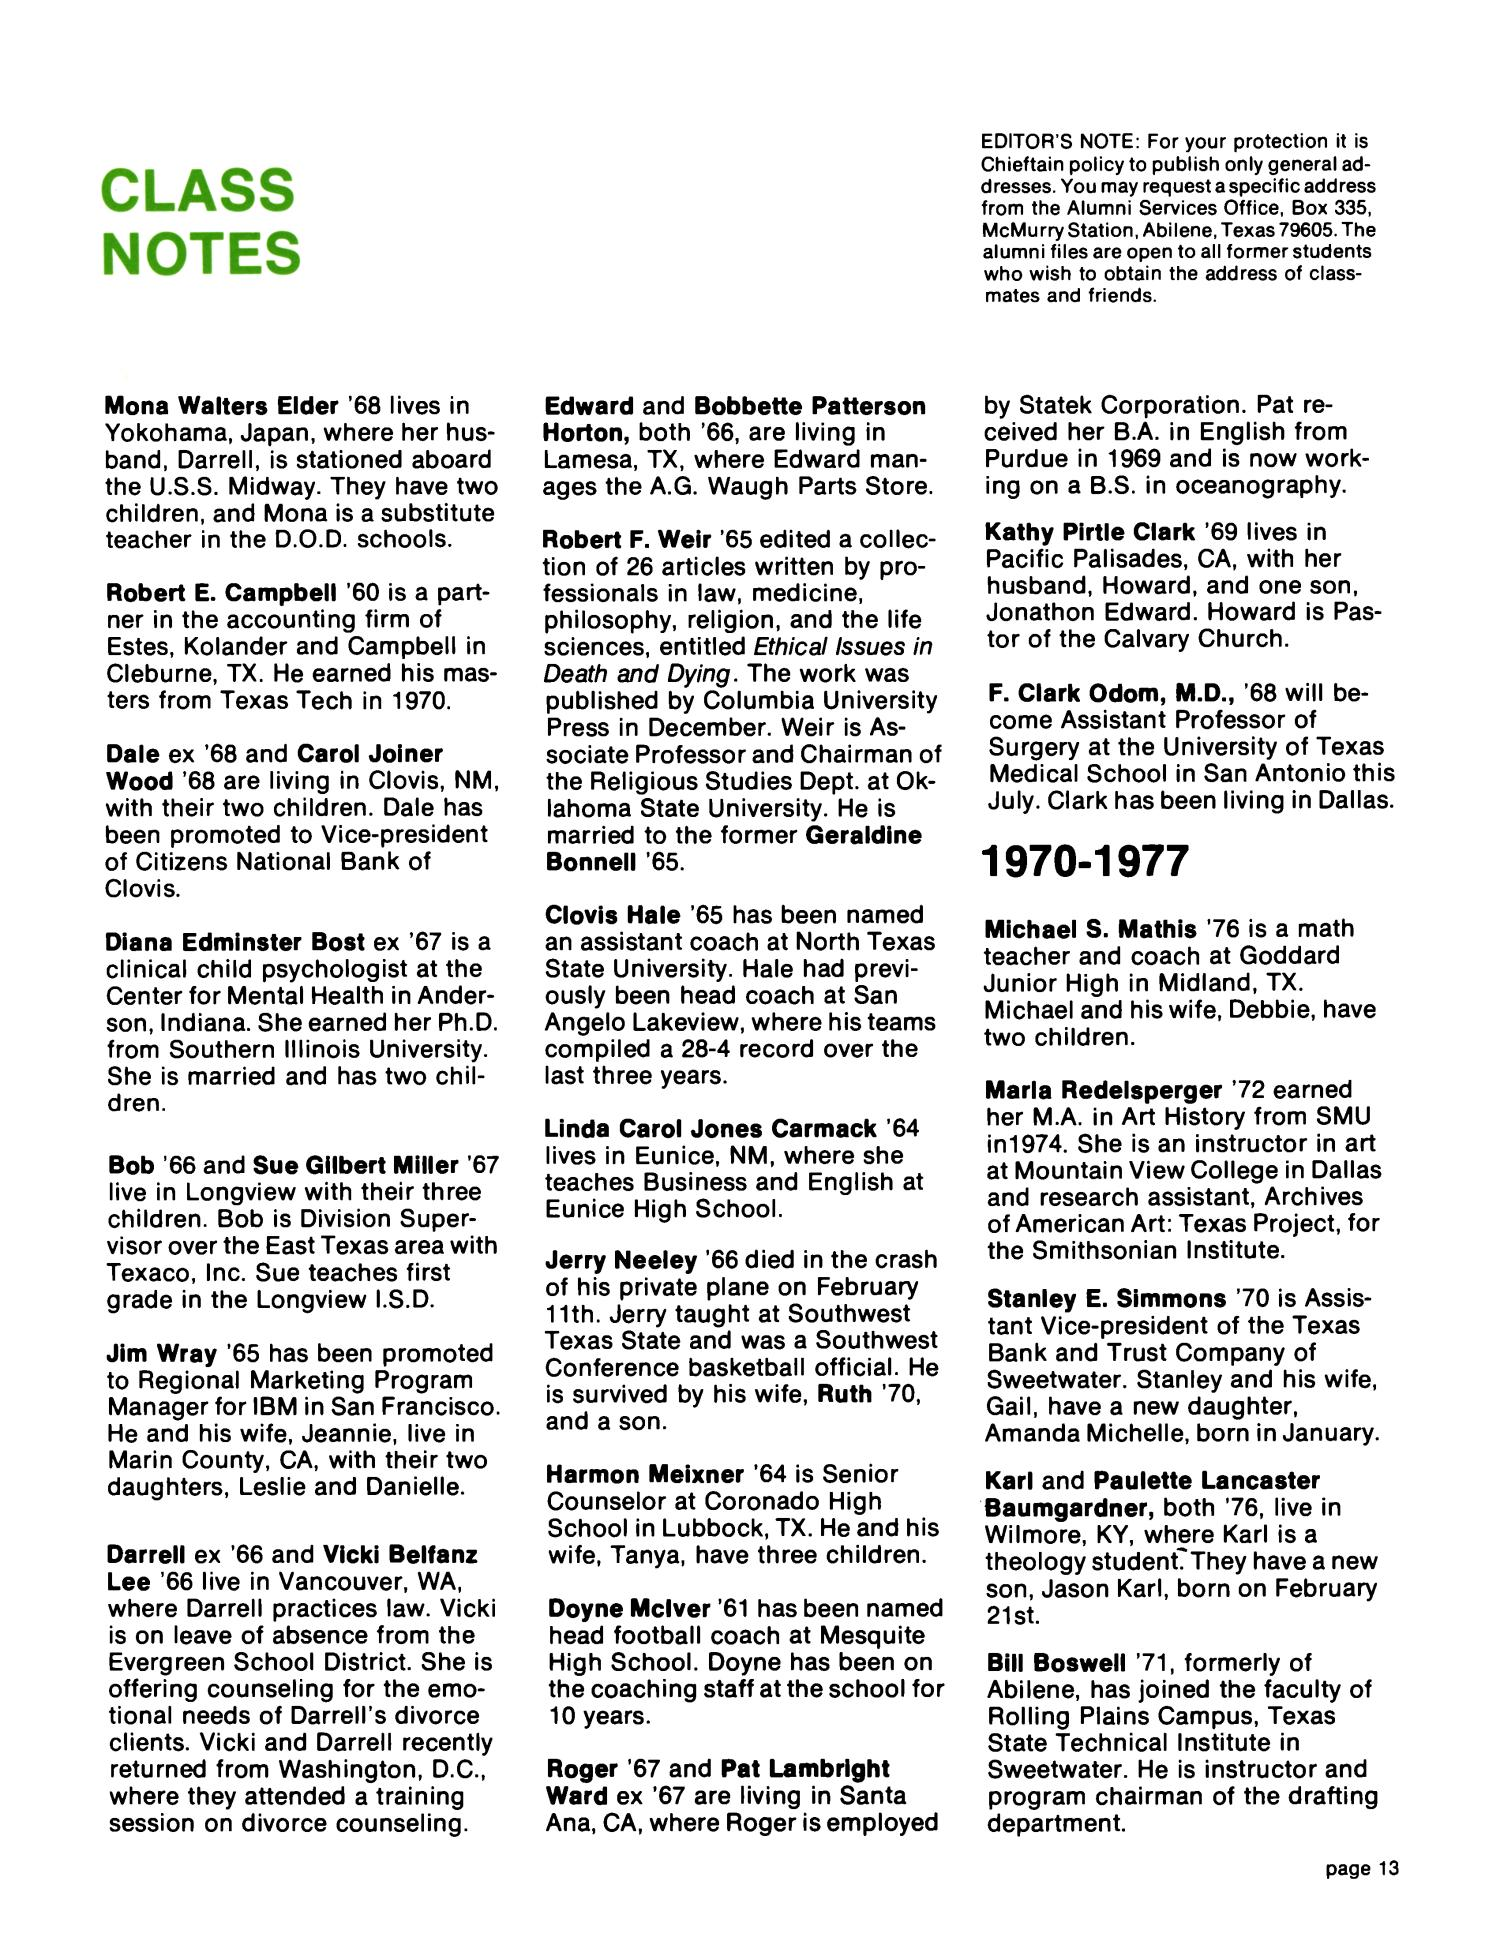 Chieftain, Volume 27, Number 2, Spring 1978 - Page 13 - The